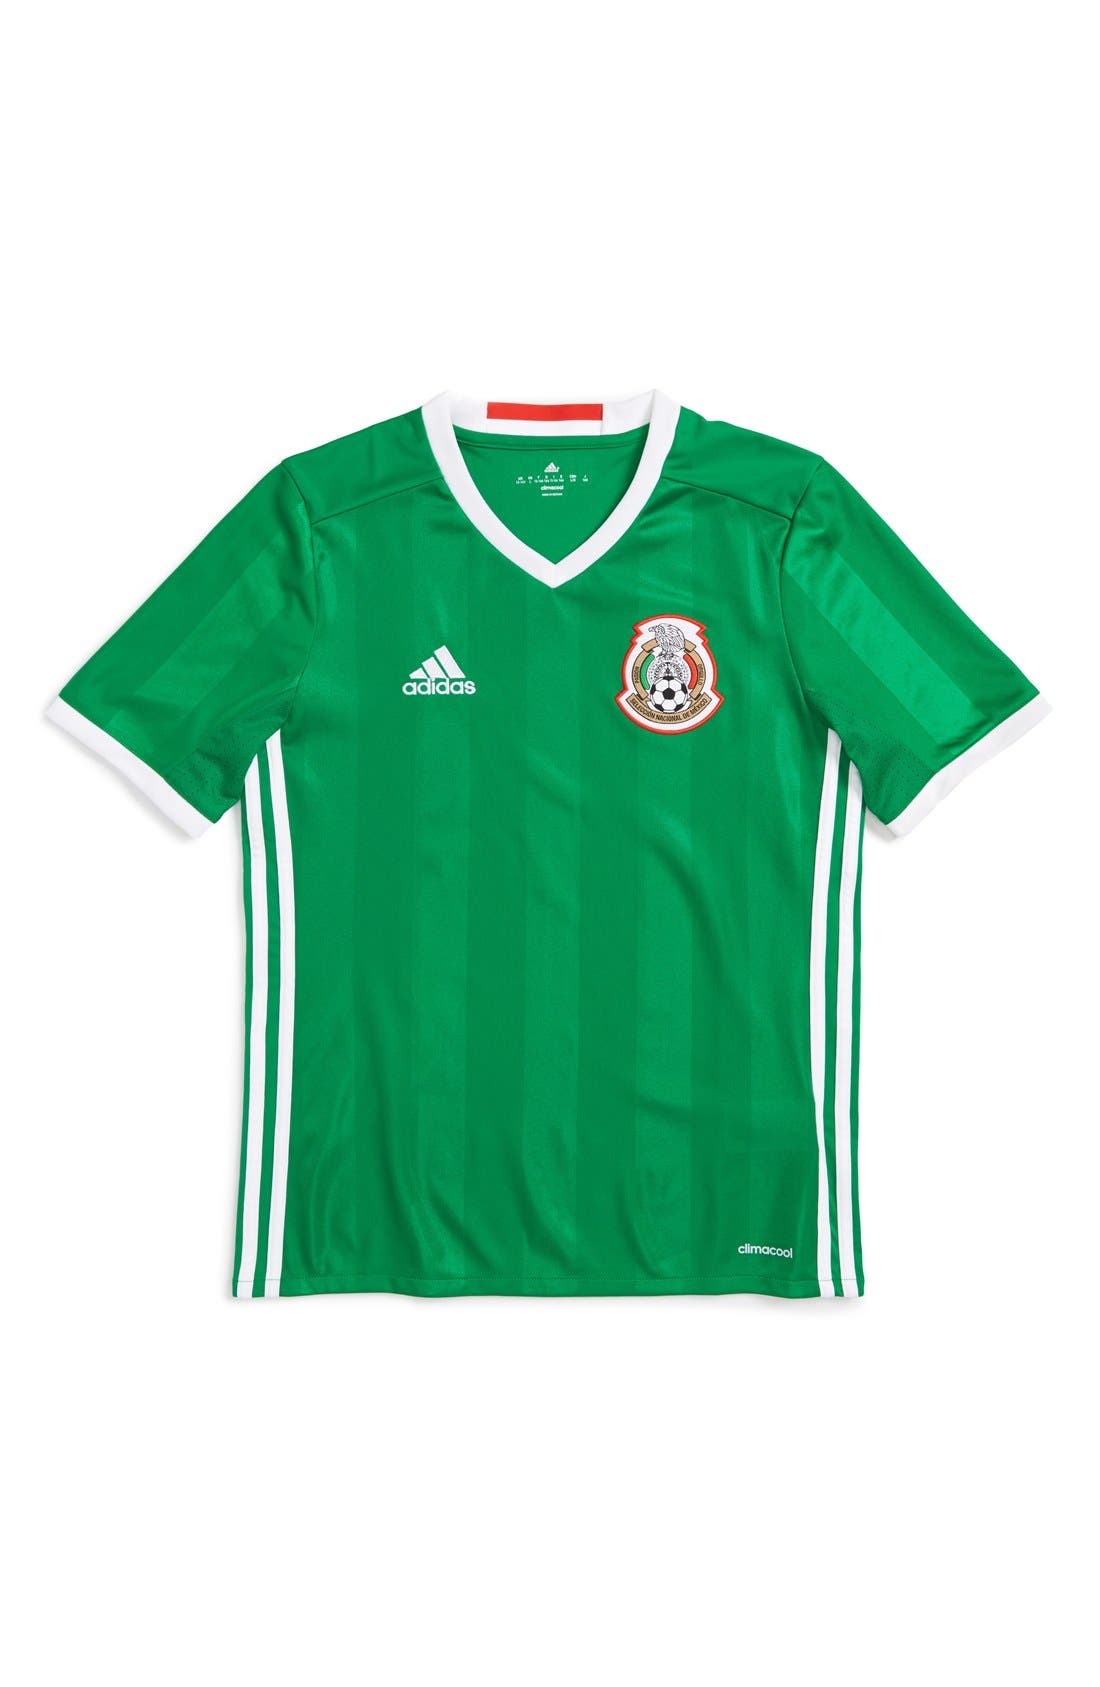 ADIDAS 'Mexico - Home' Replica Soccer Jersey, Main, color, 360